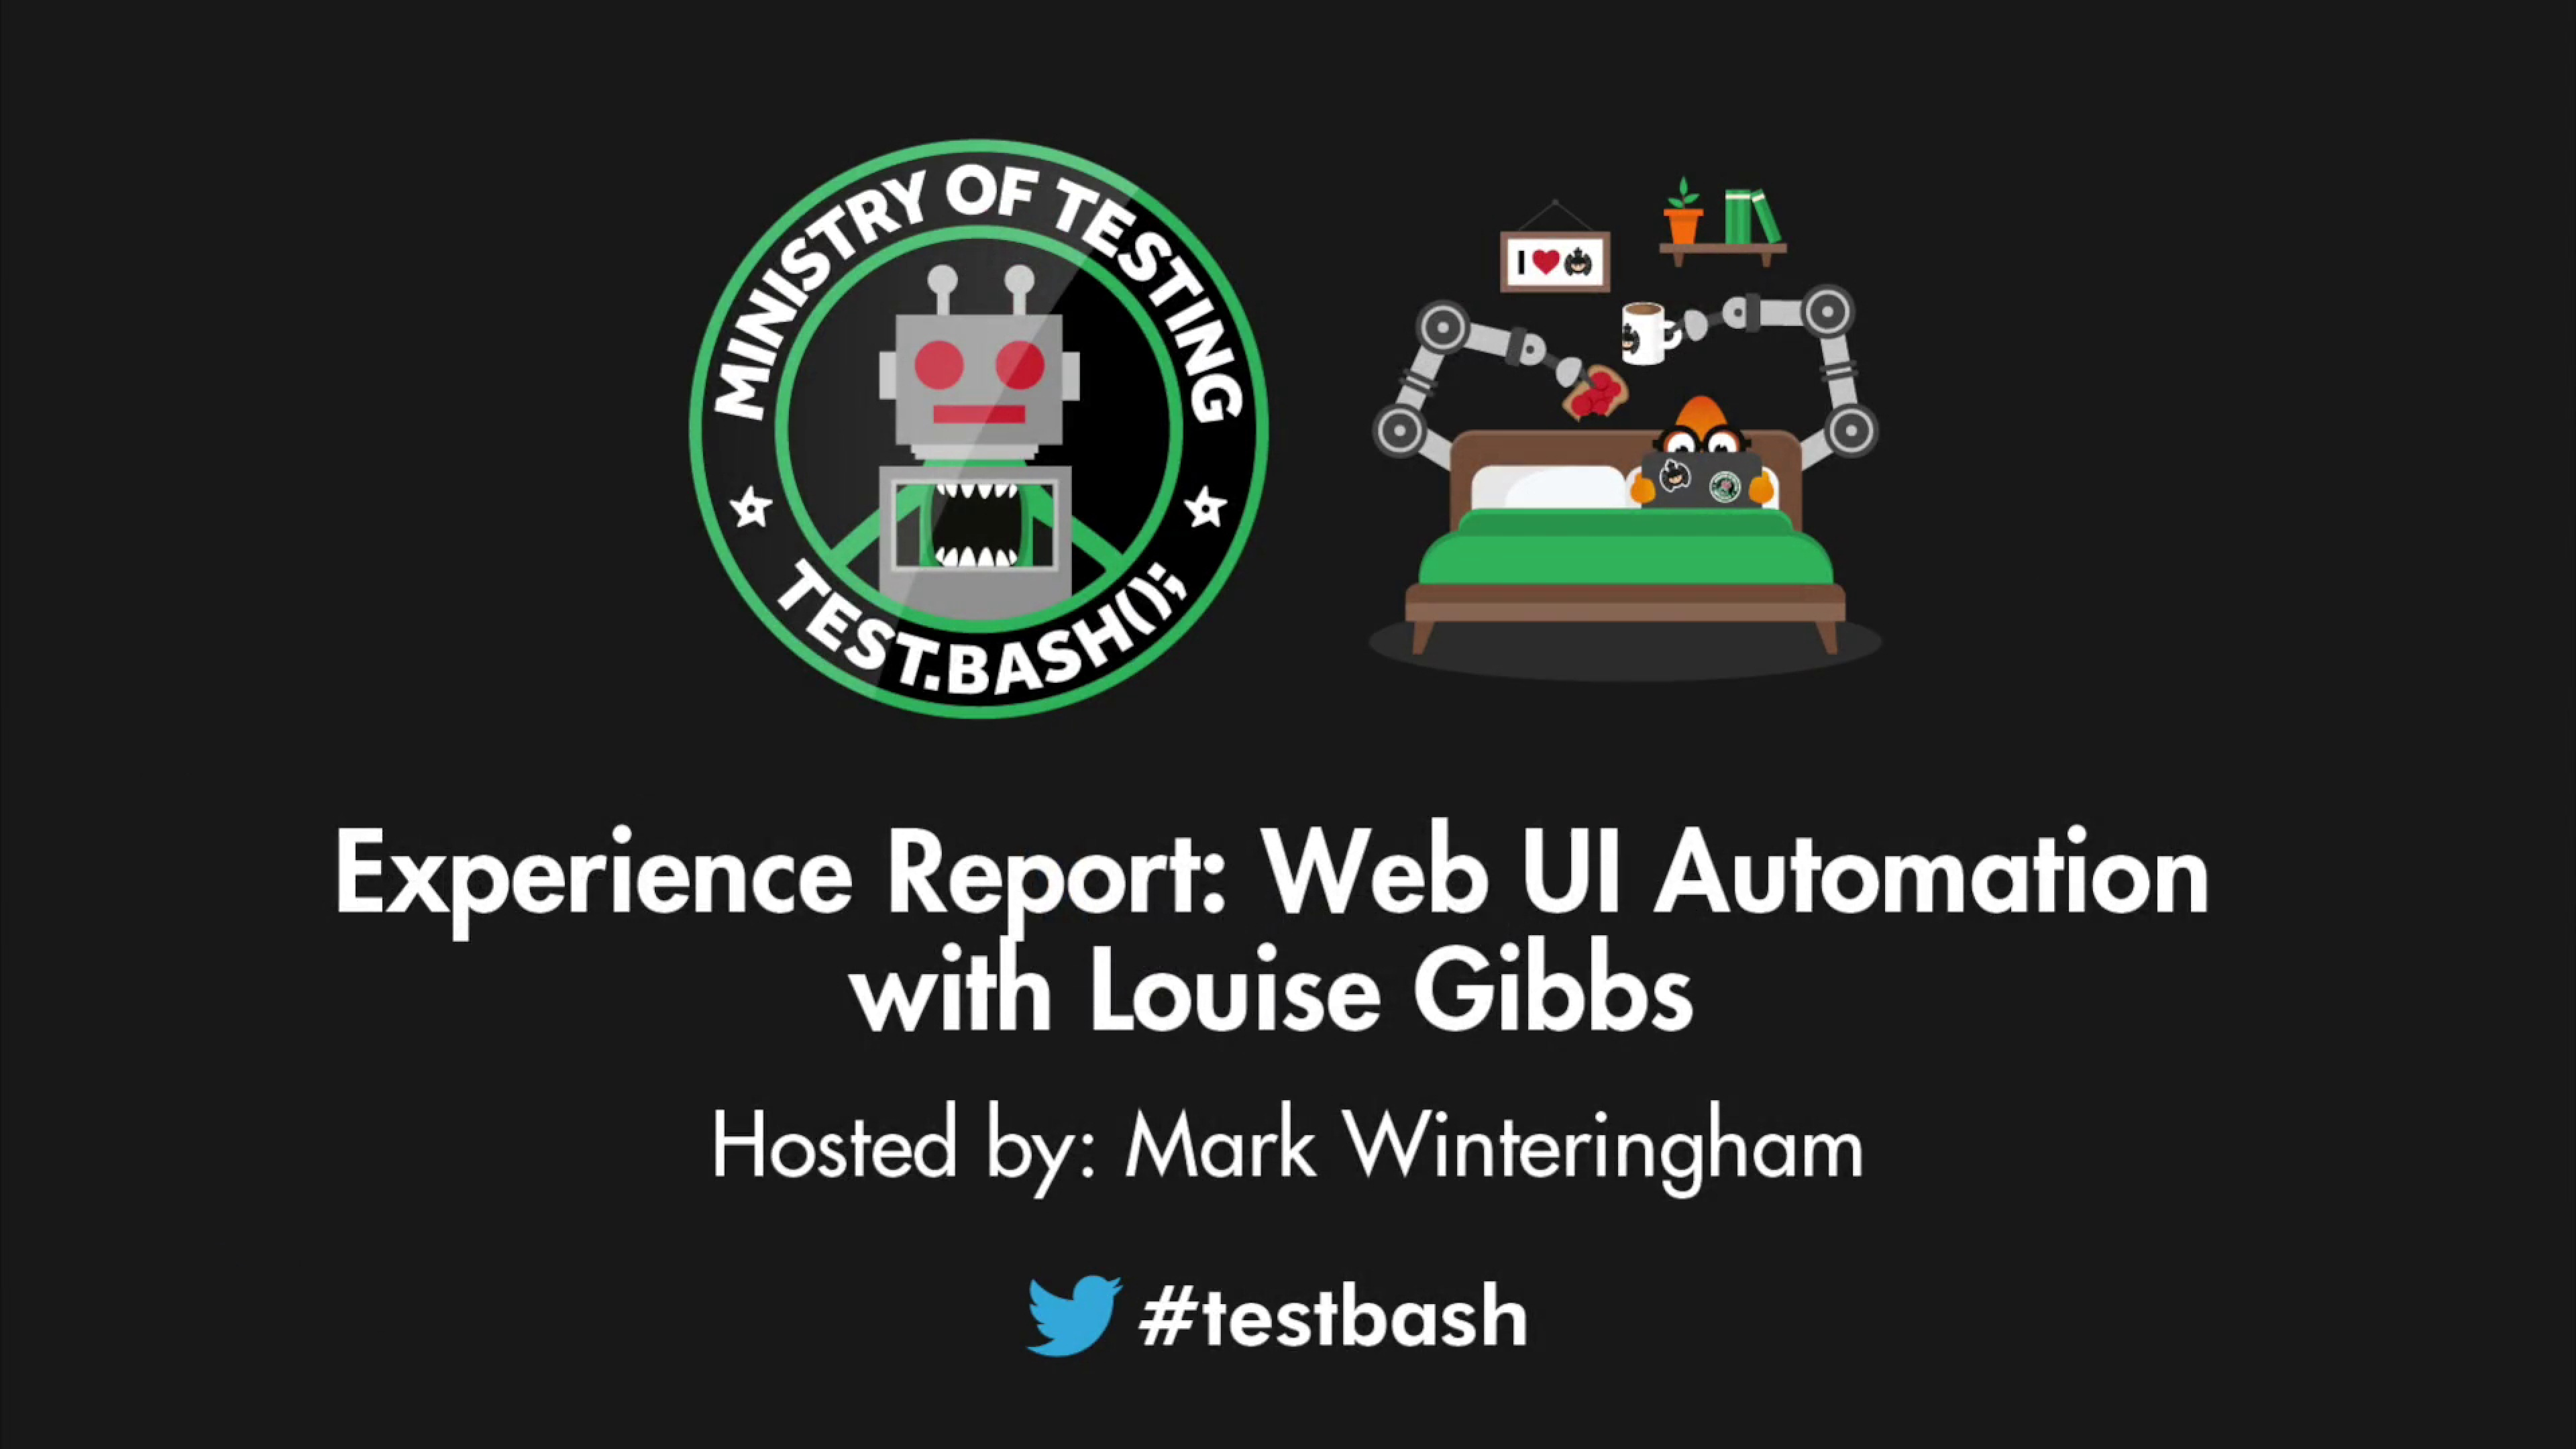 Experience Report: Web UI Automation - Louise Gibbs